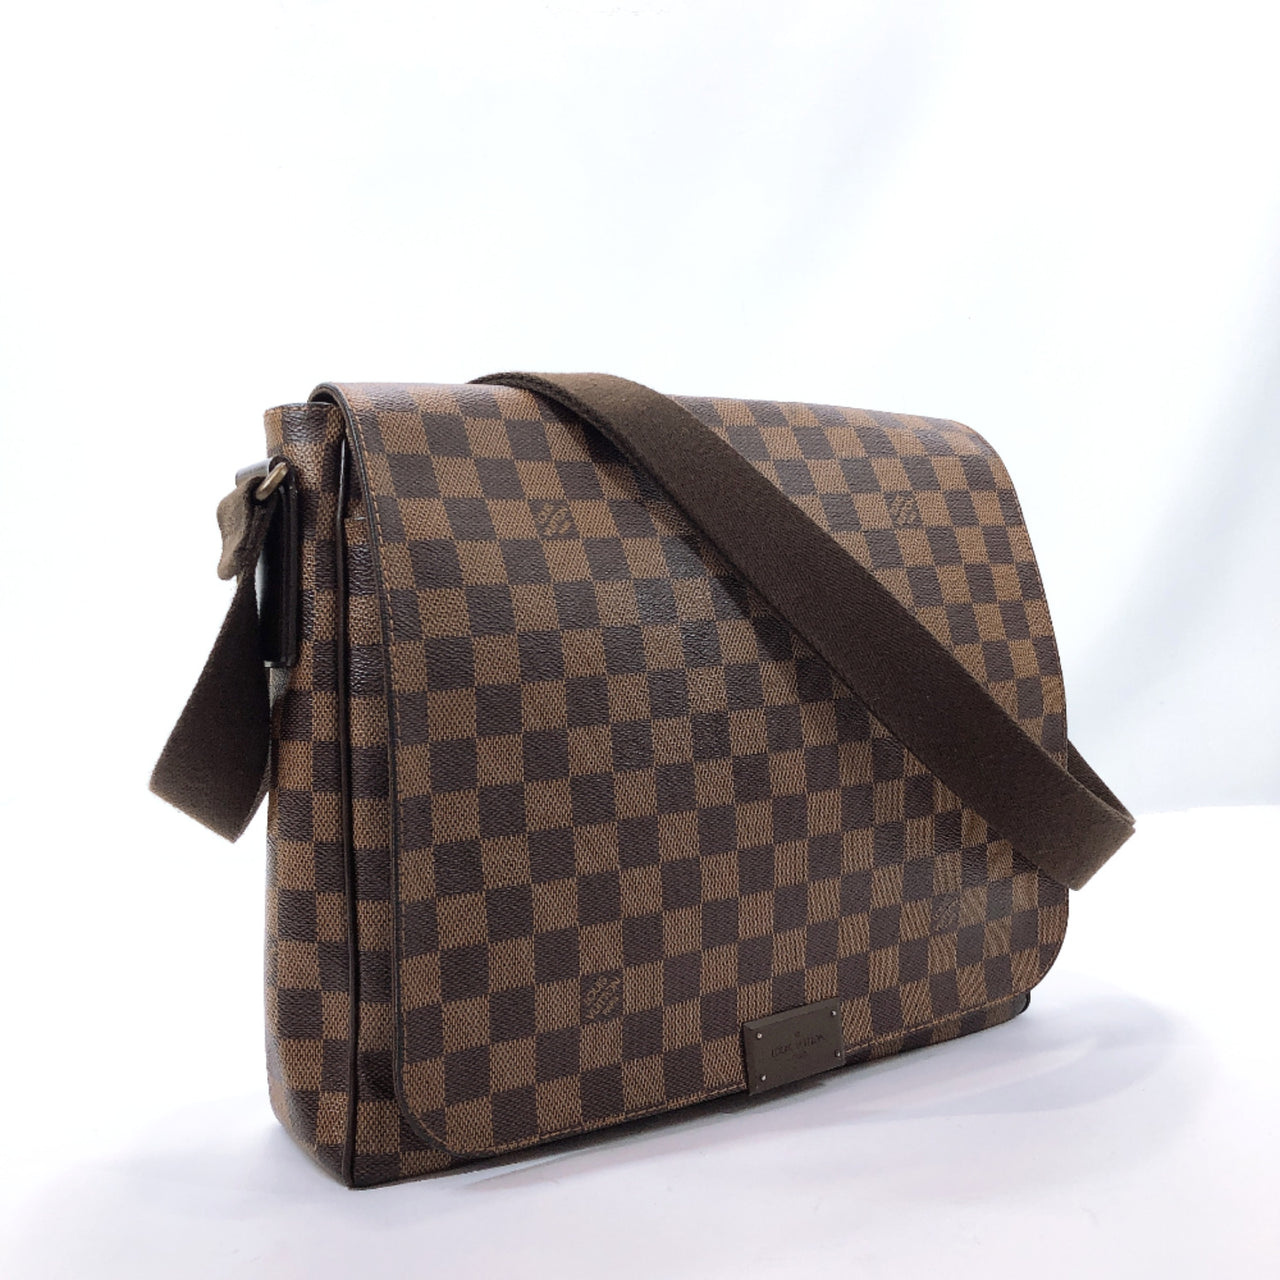 LOUIS VUITTON Shoulder Bag N41212 District MM Messenger bag Damier canvas Brown mens Used